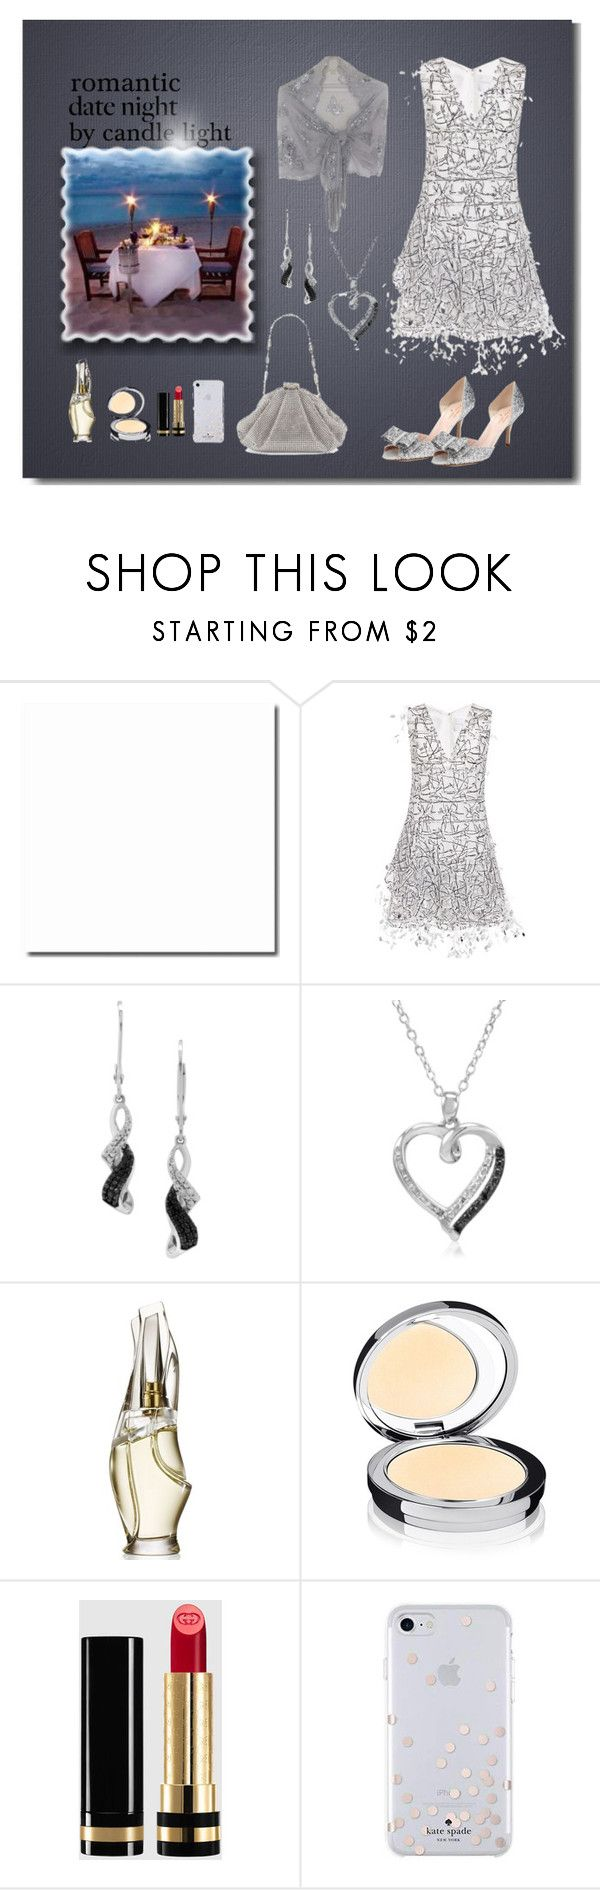 """""""Candle light dinner"""" by leaff88 ❤ liked on Polyvore featuring Carolina Herrera, Amanda Rose Collection, Donna Karan, Rodial, Gucci, Kate Spade and summerdatenight"""